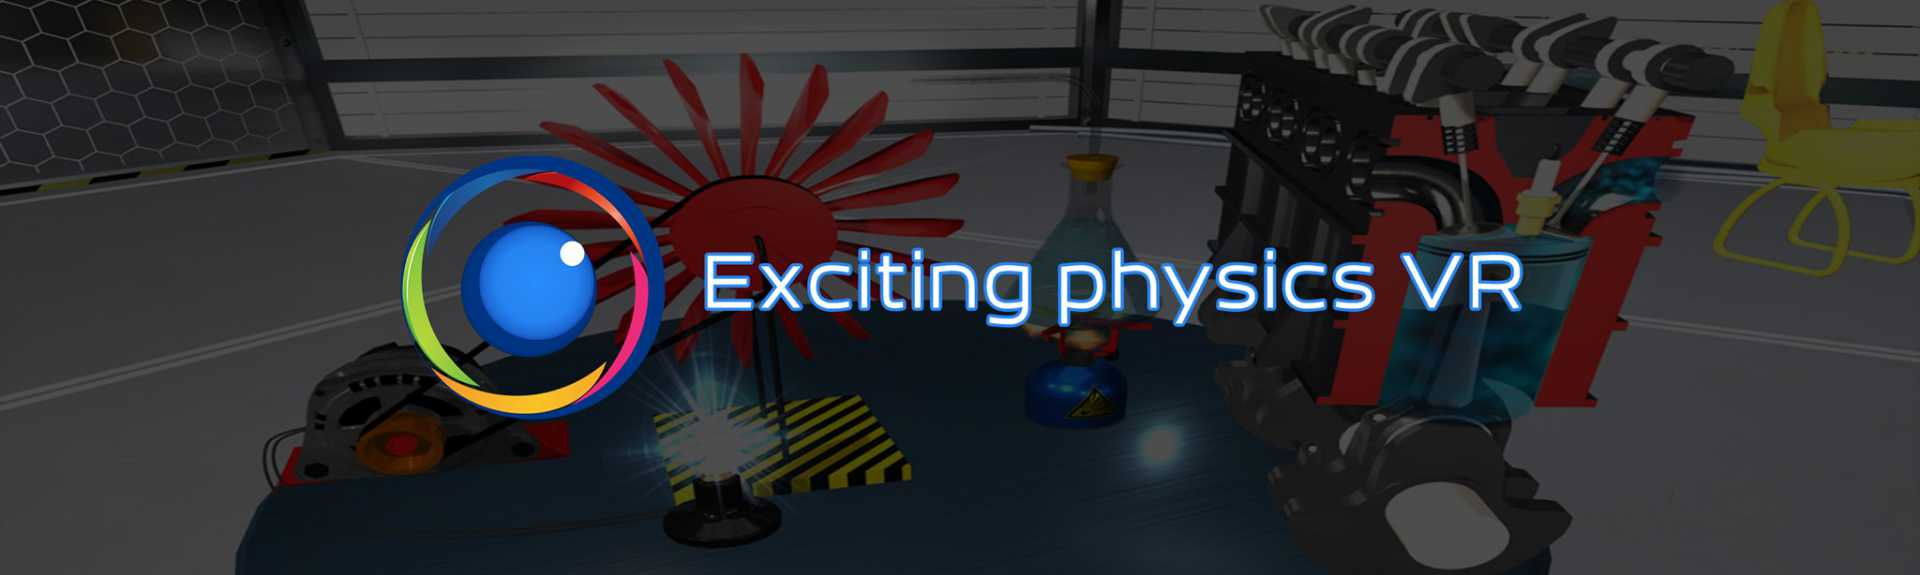 Exciting physics VR